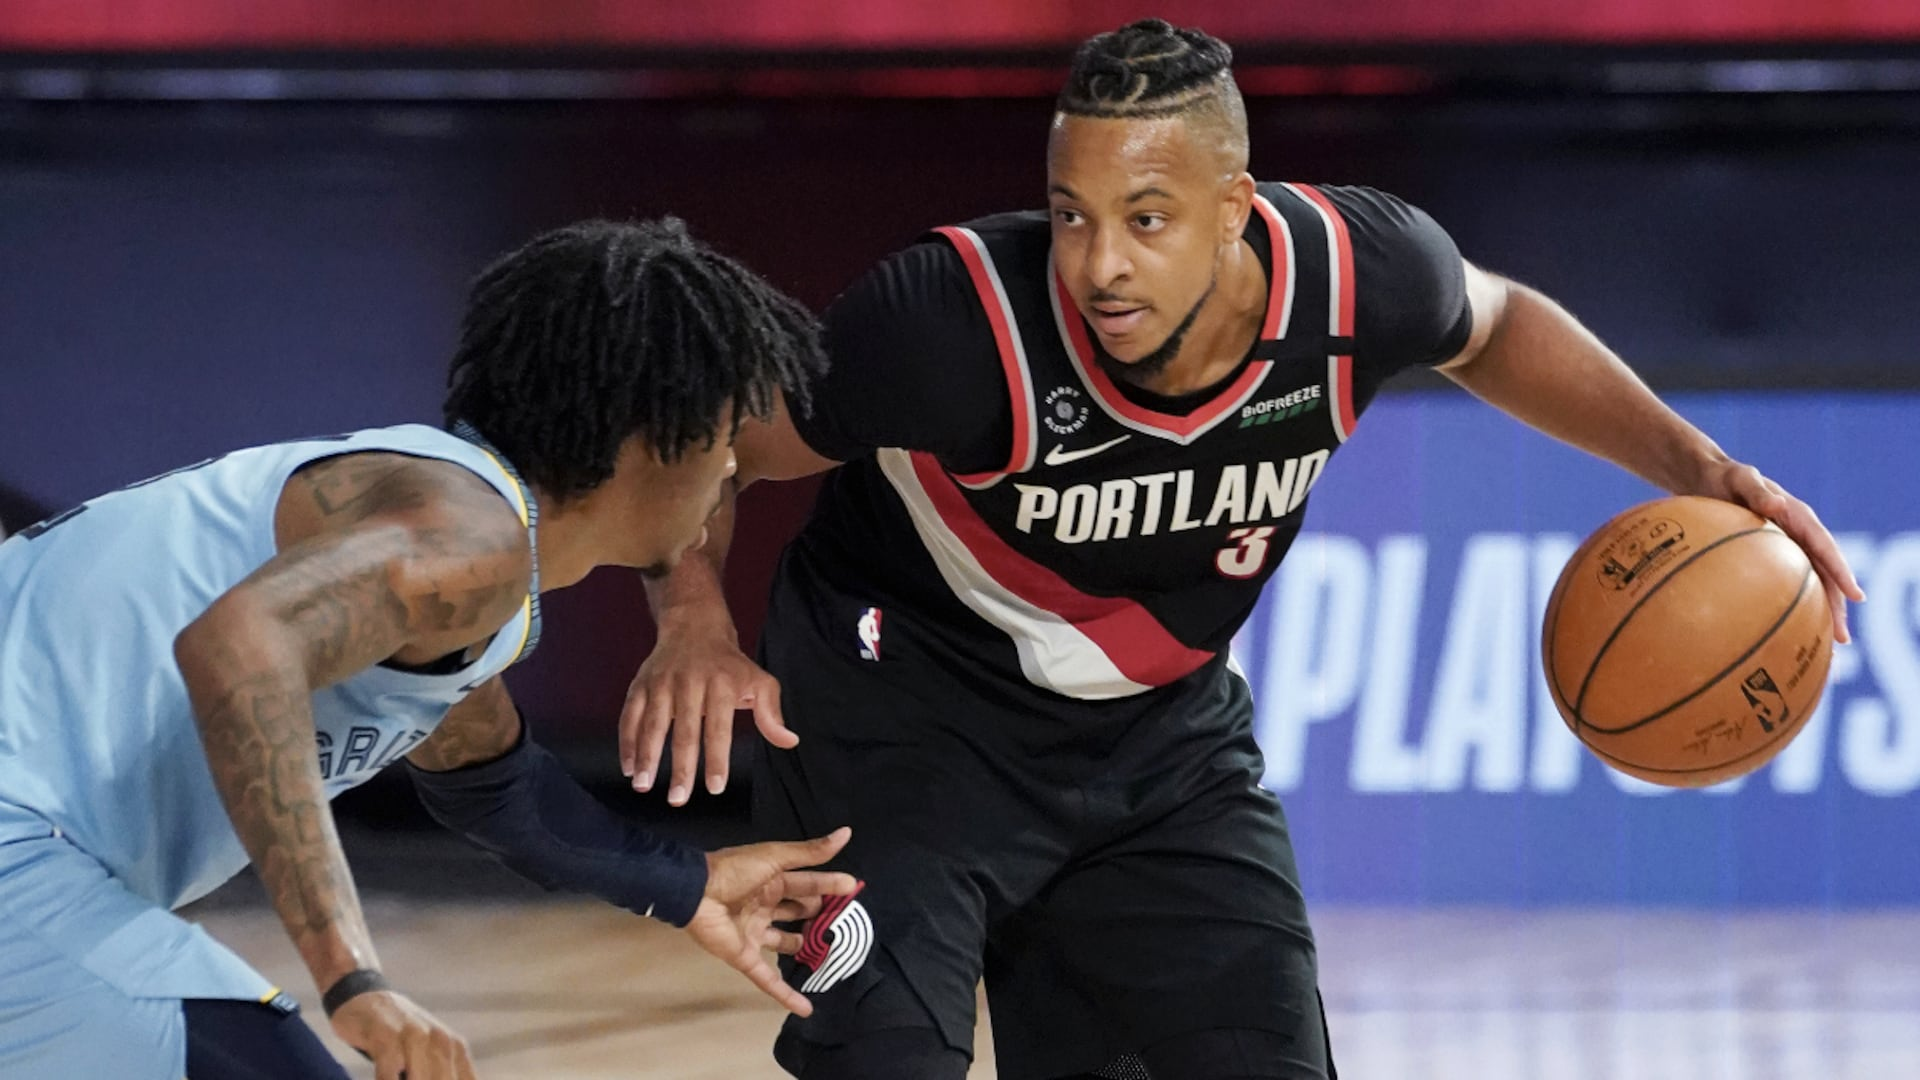 CJ McCollum's clutch performance gives Blazers confidence boost